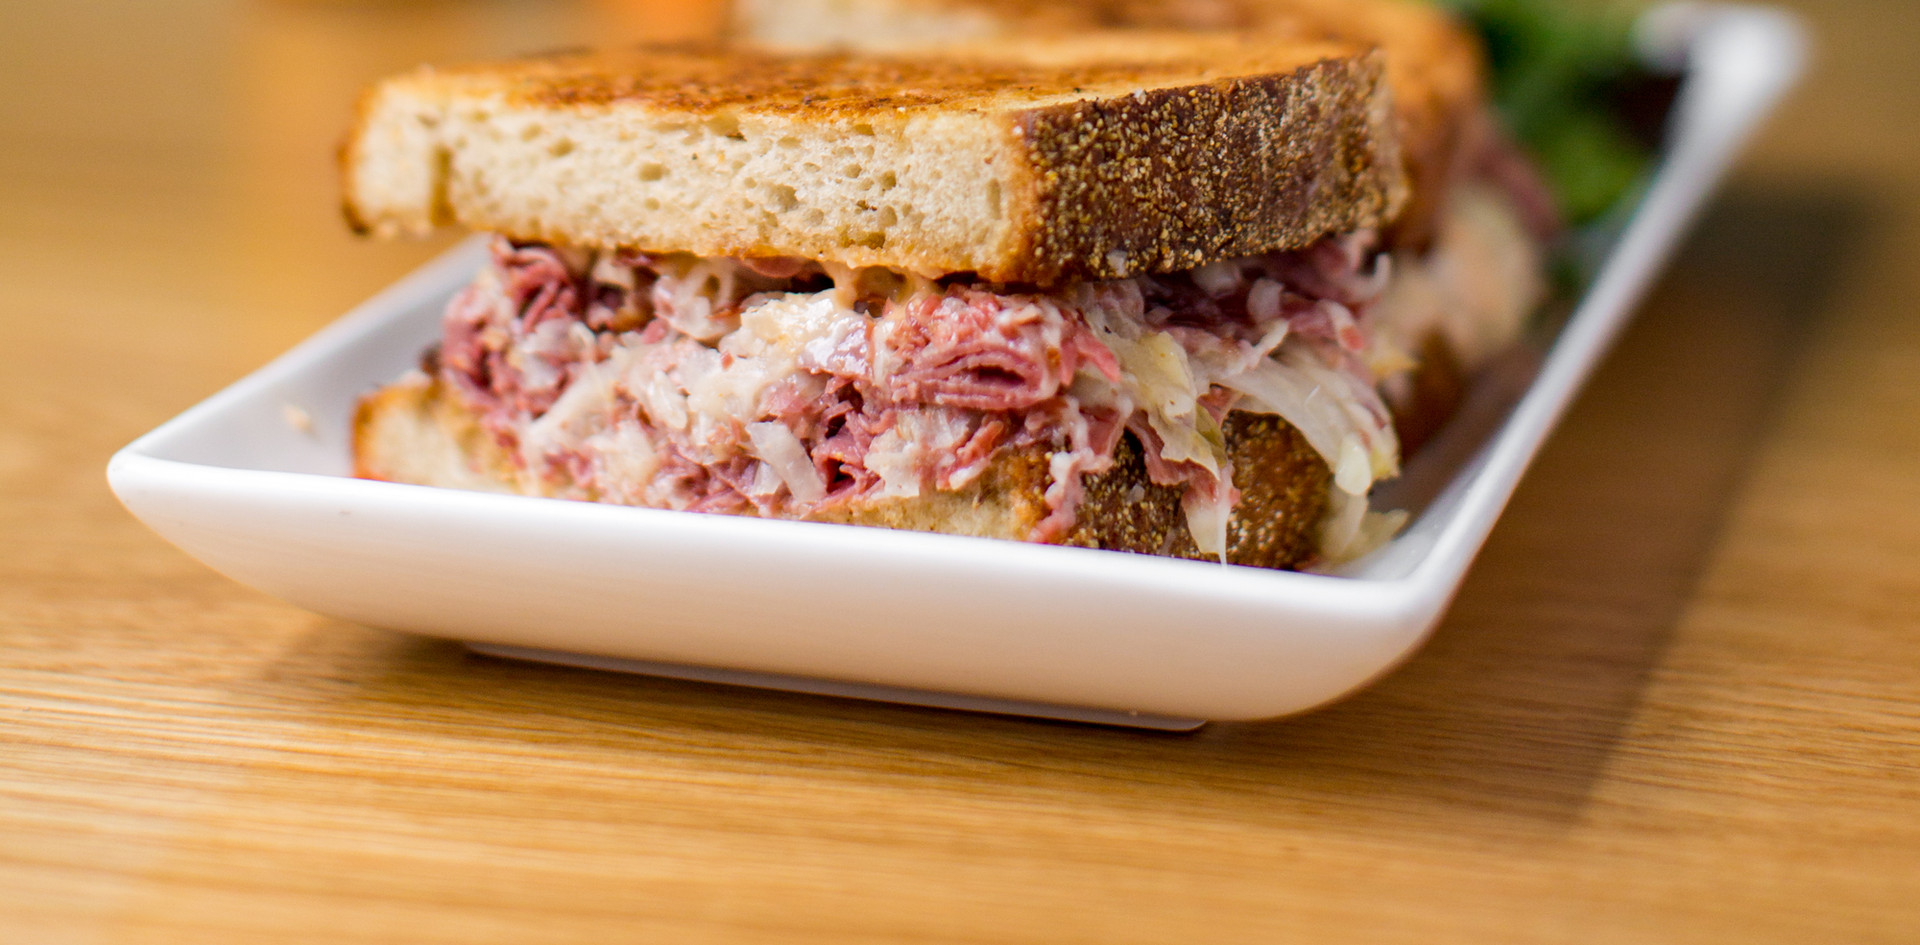 The Rueben